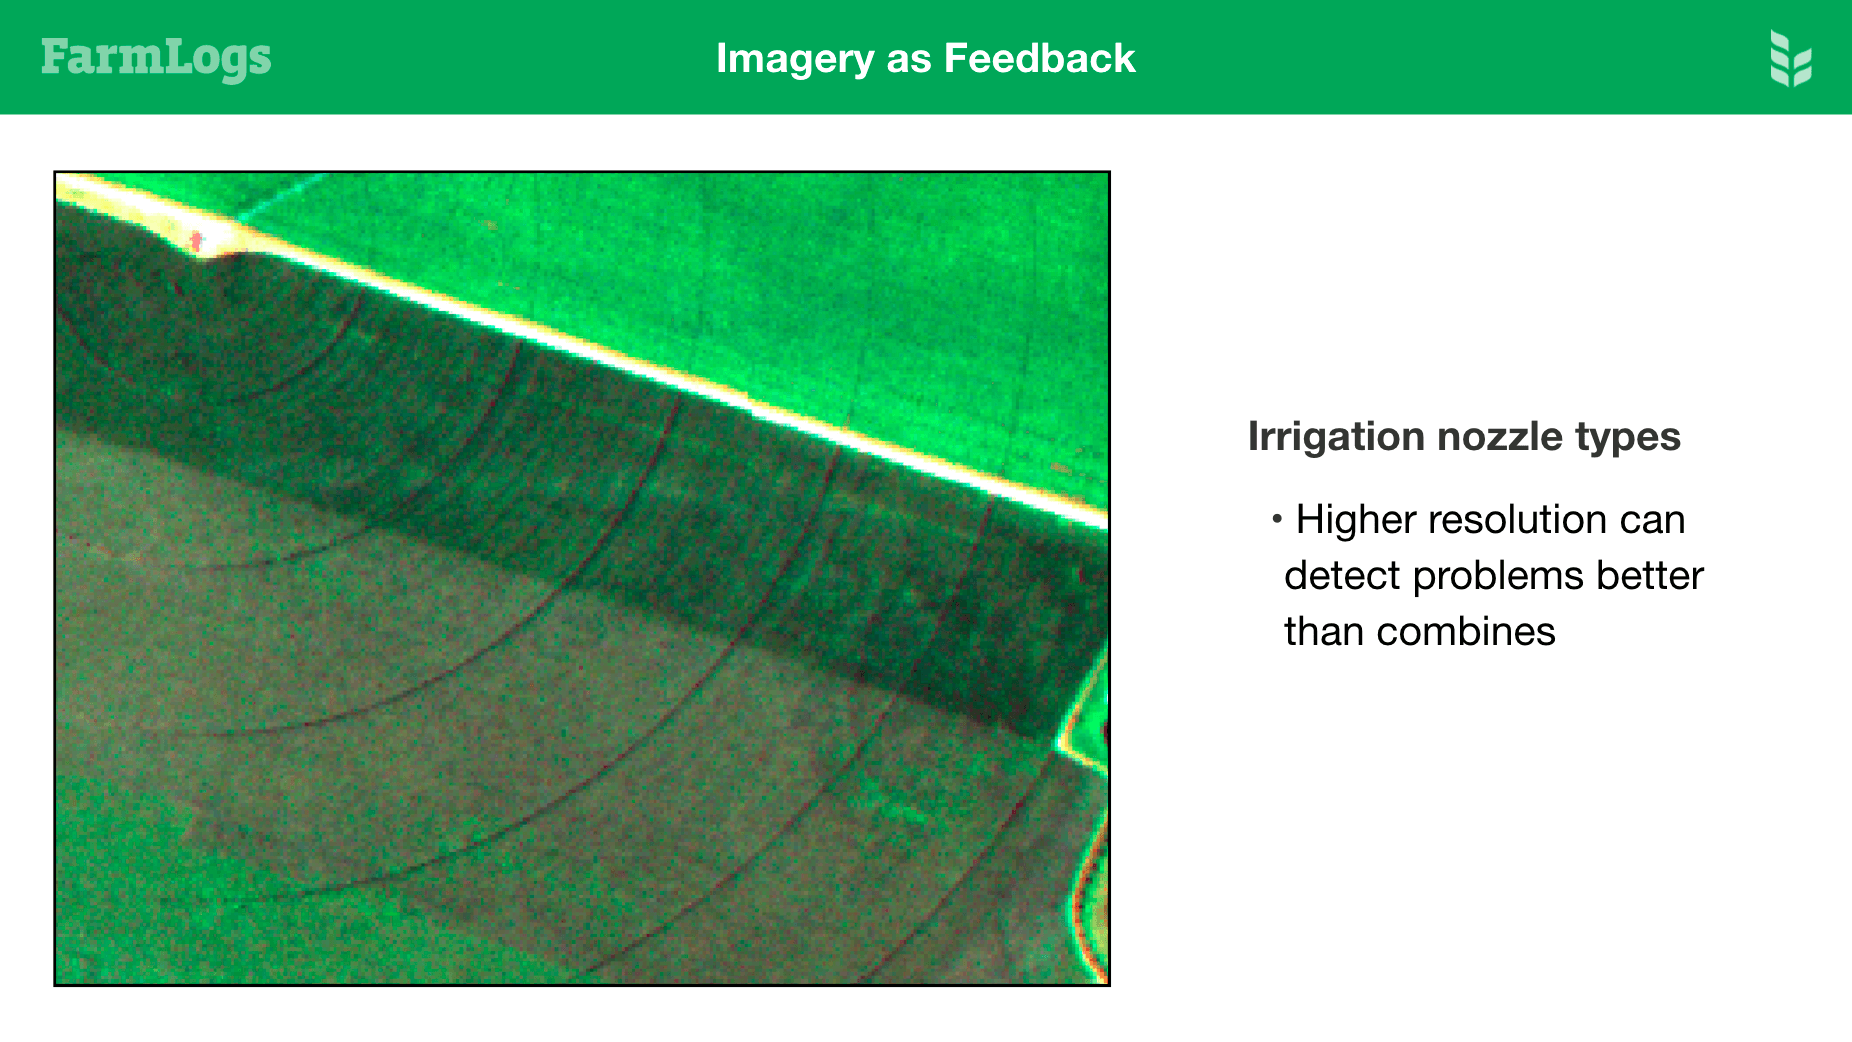 Imagery showing Irrigation problem